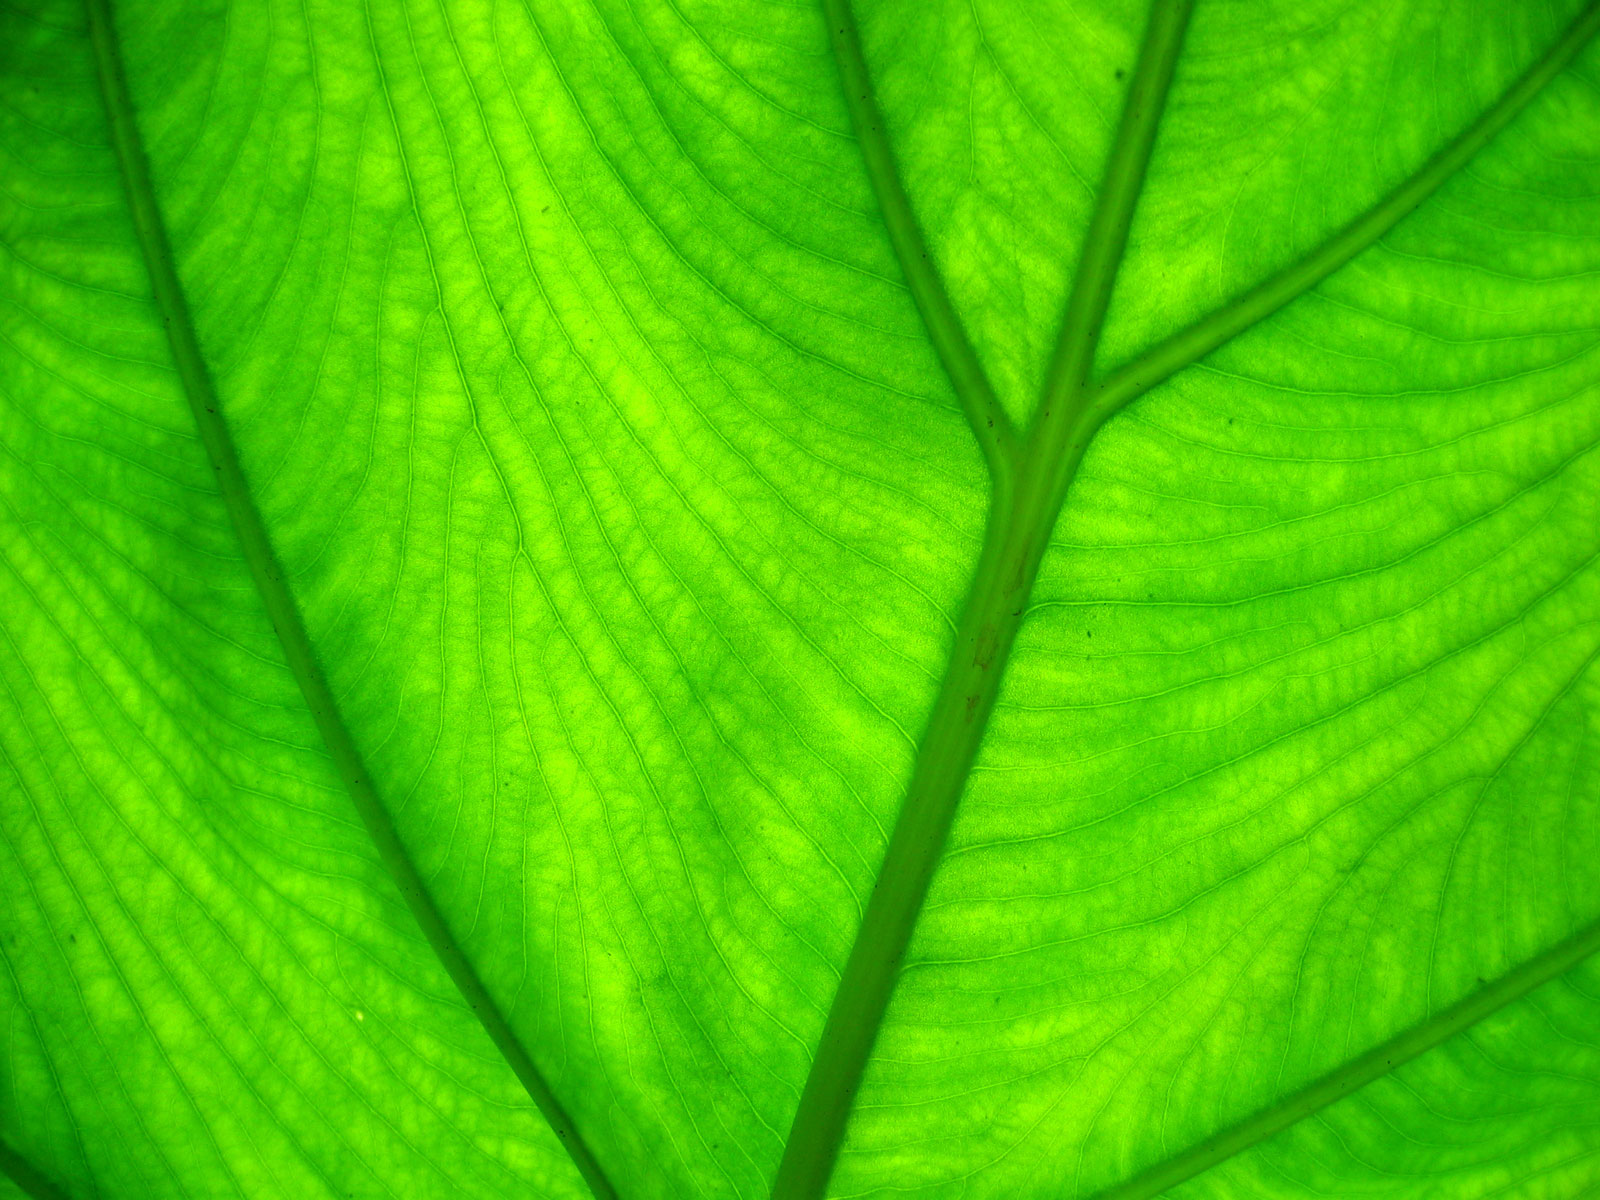 Black and White Wallpapers: Green Leaf Wallpaper